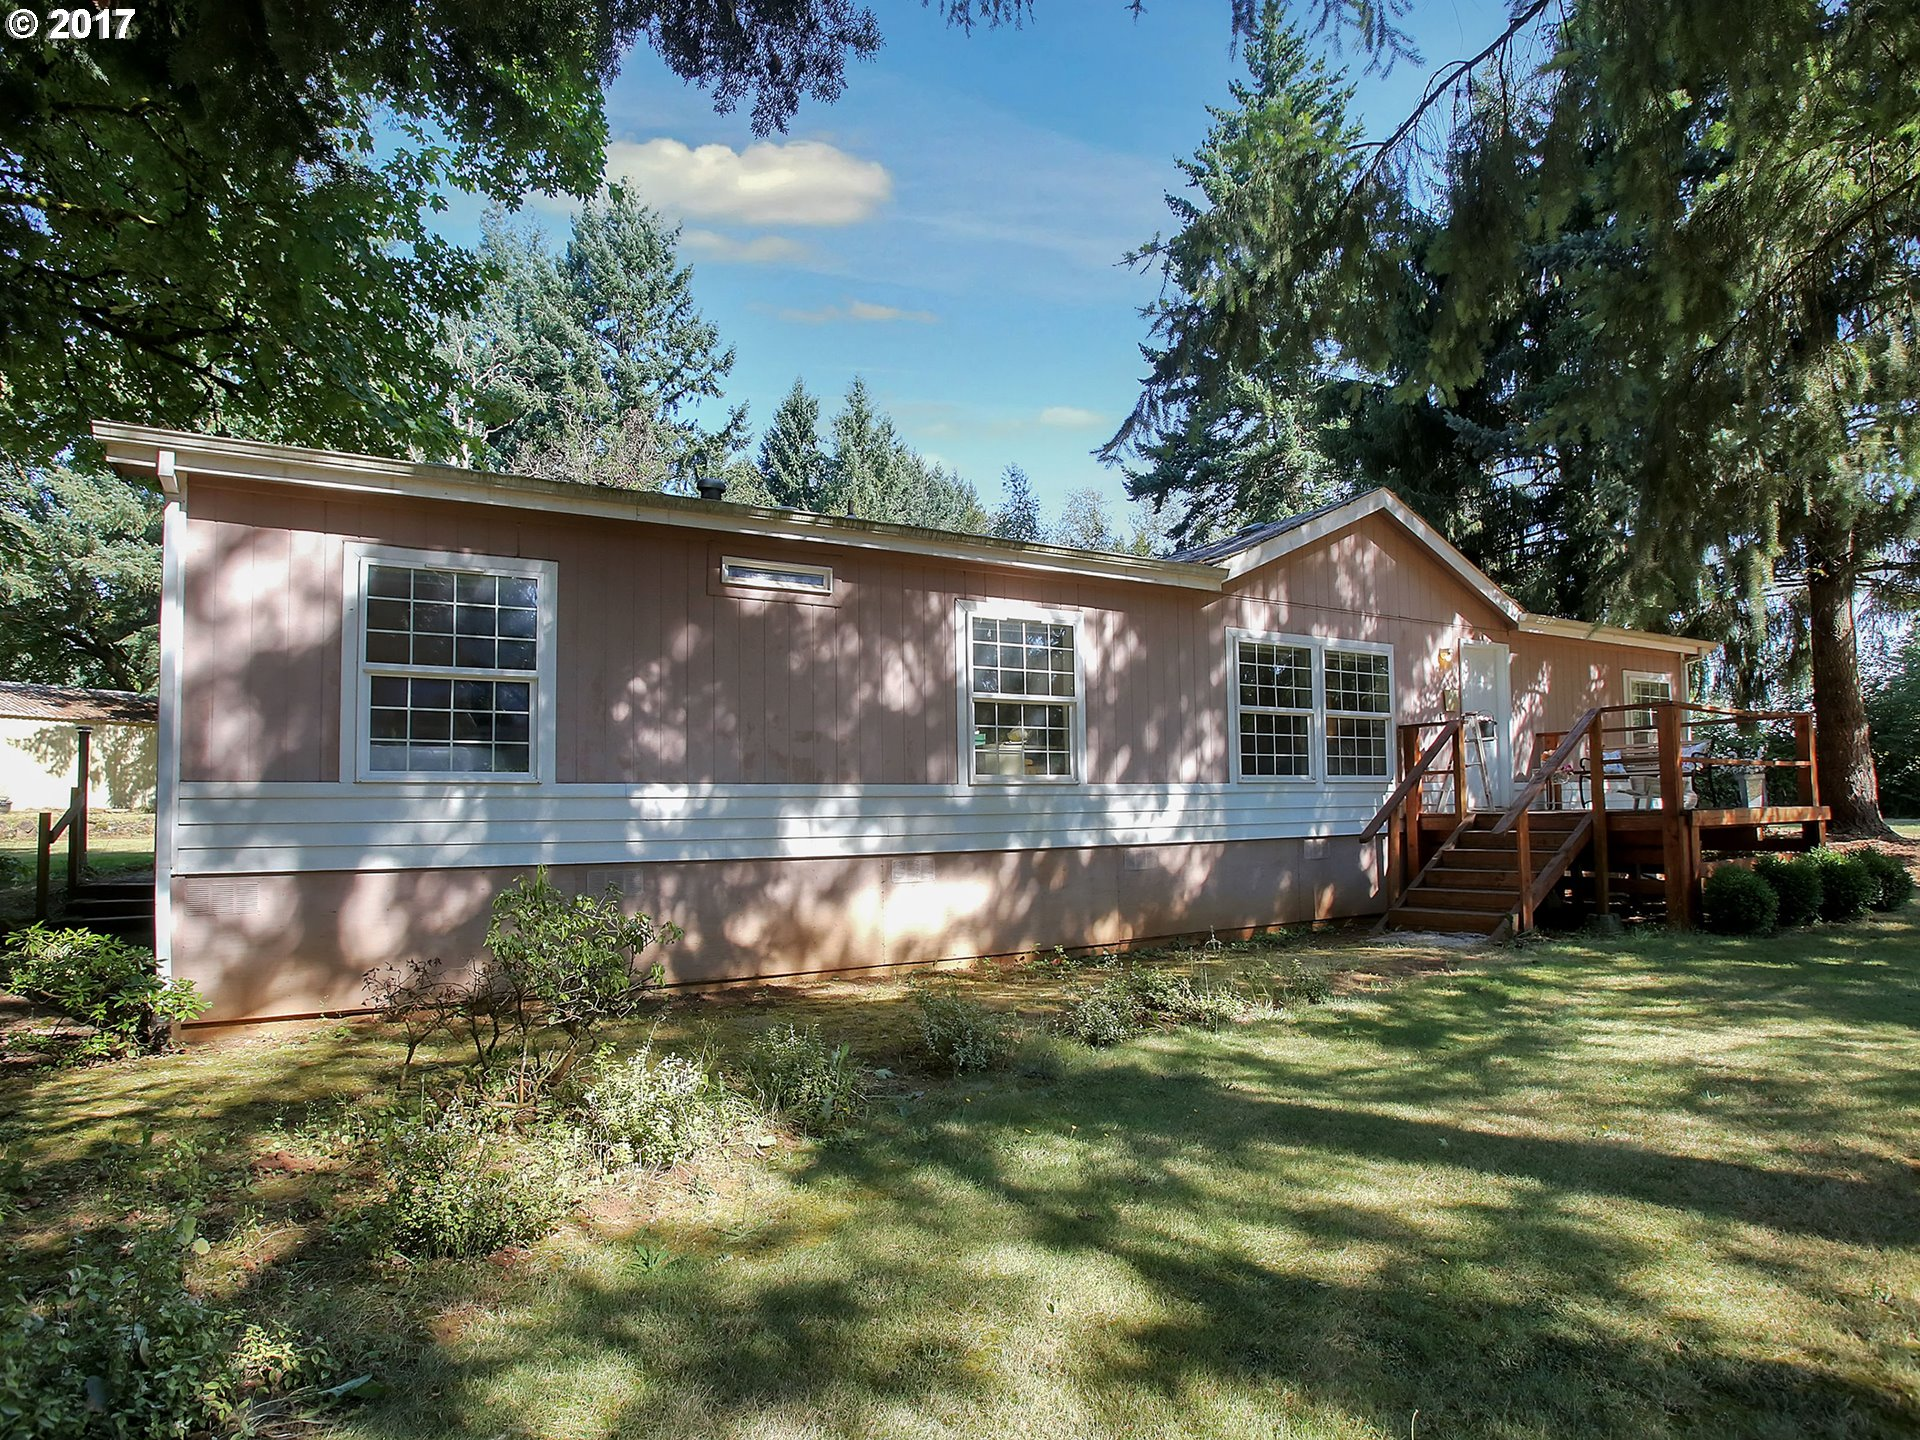 13577 S UNION HALL RD, Canby, OR 97013